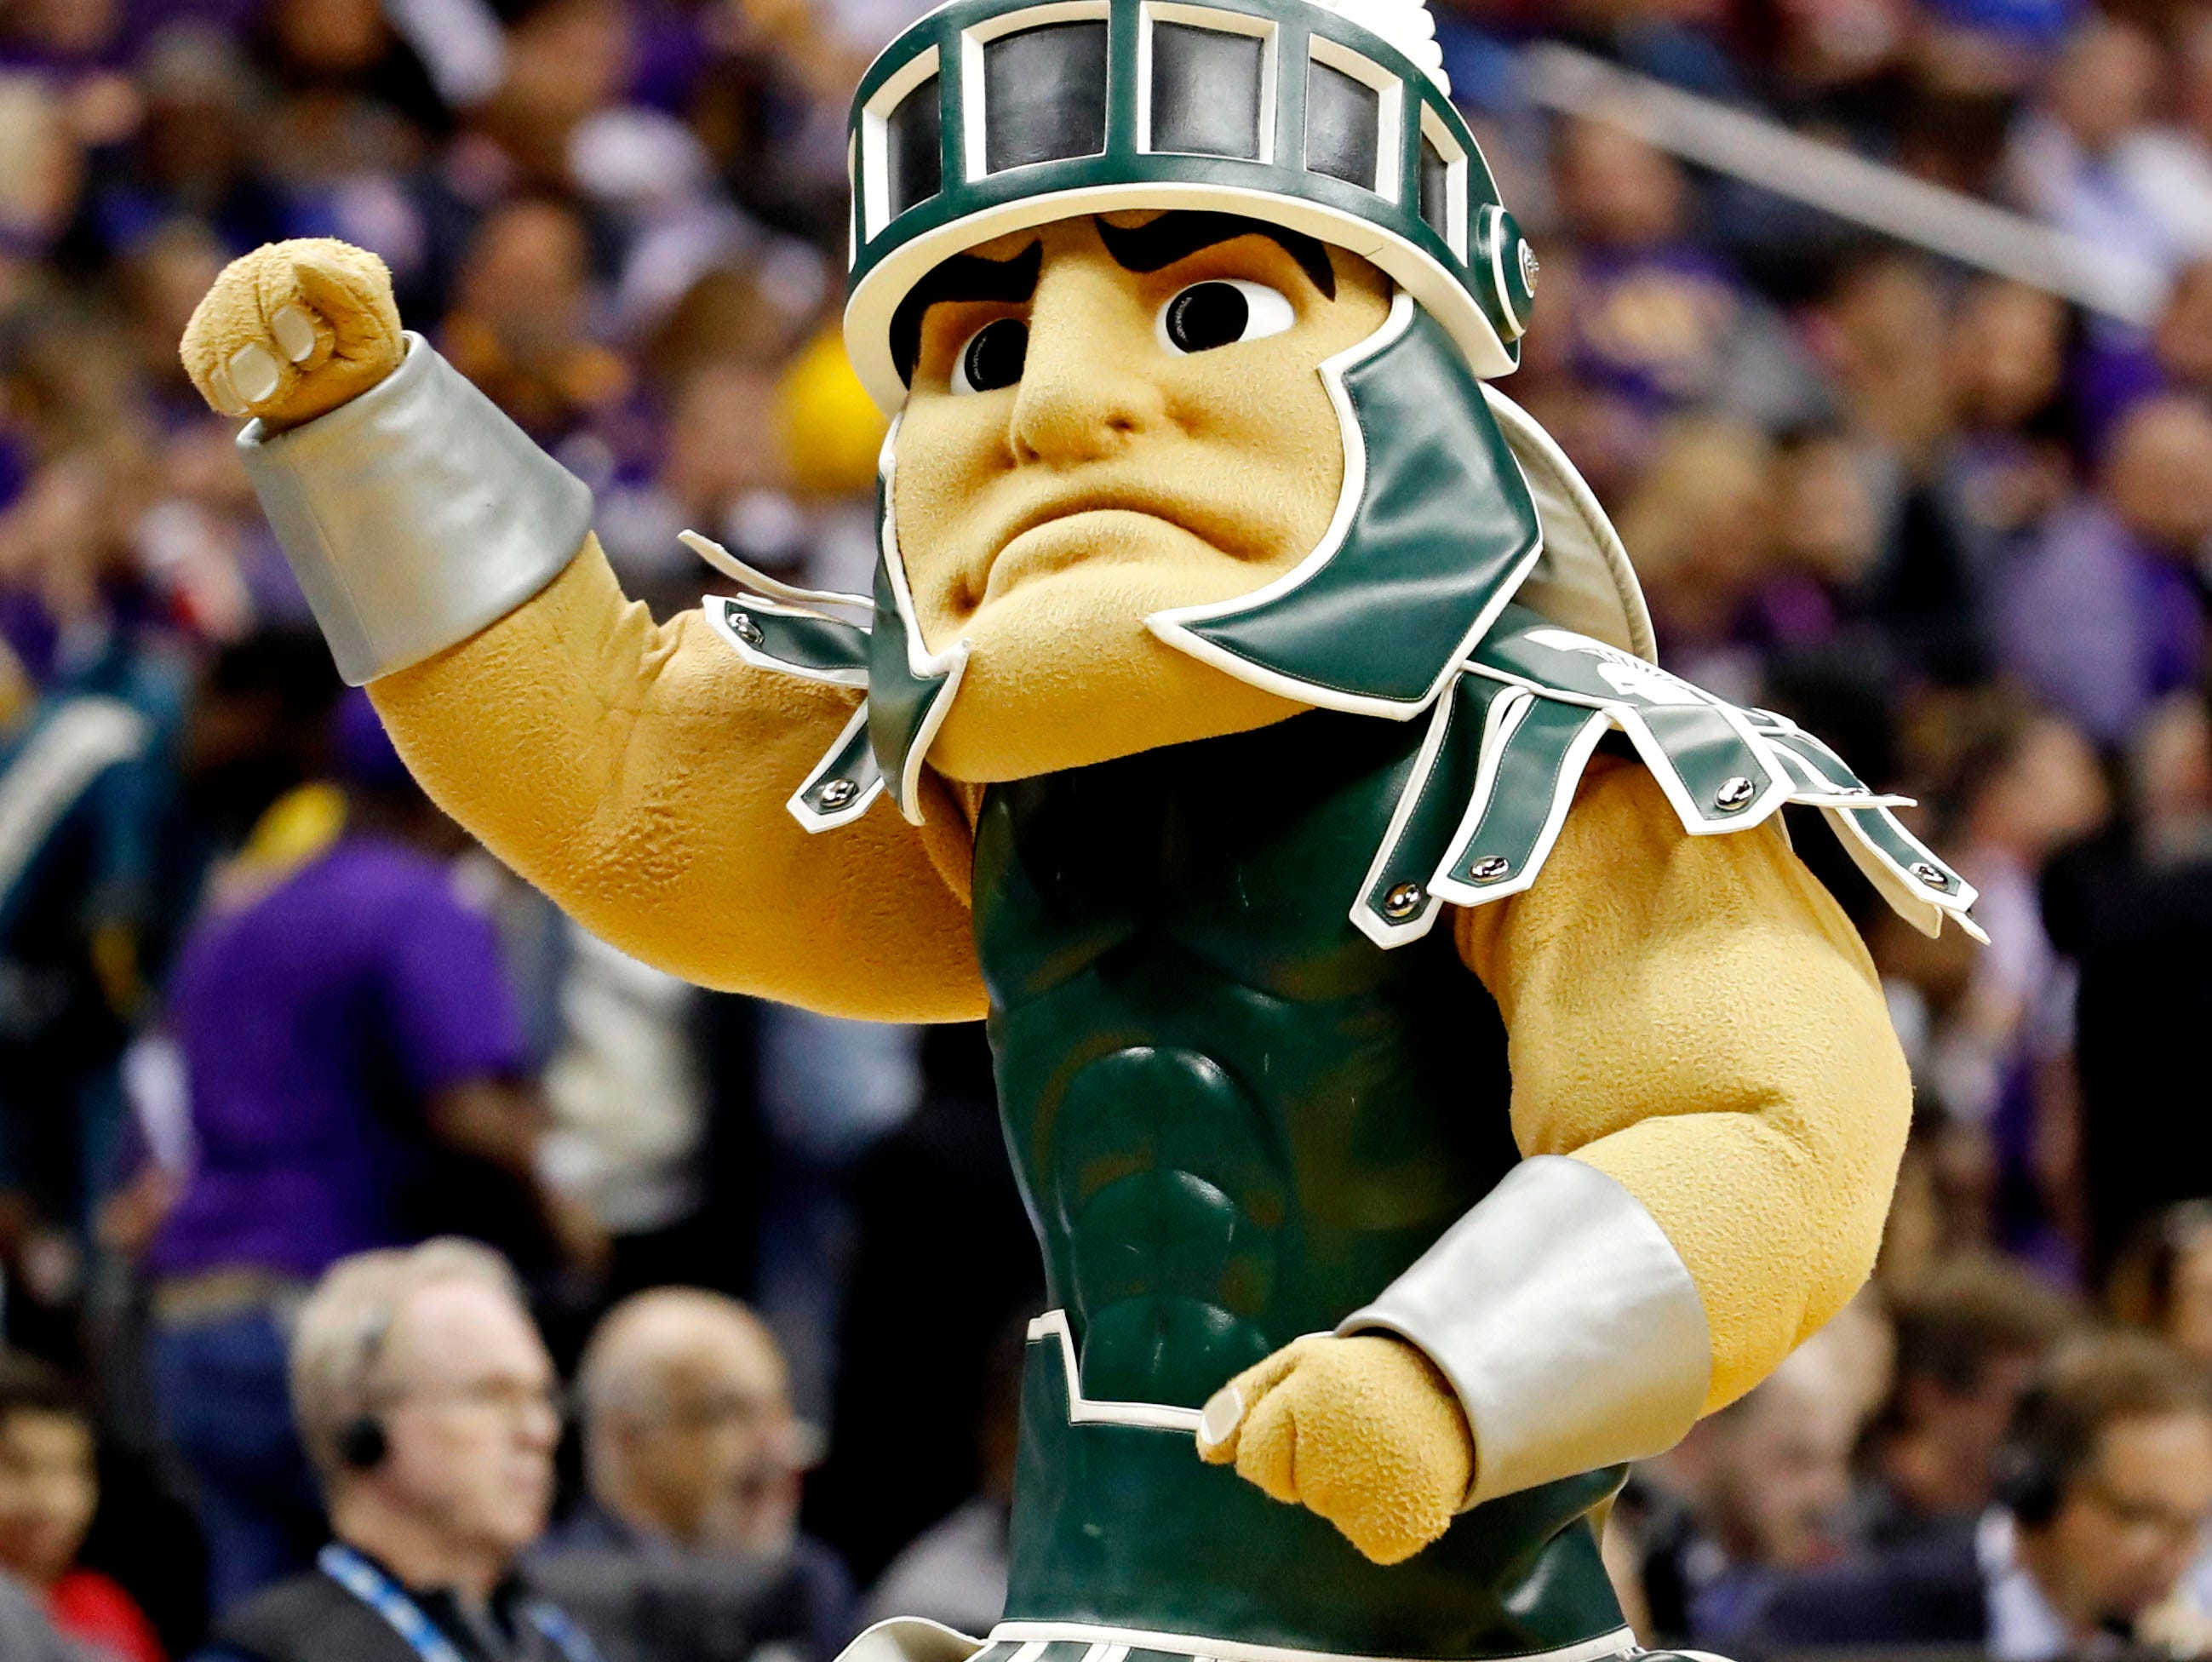 Mar 29, 2019; Washington, DC, USA; The Michigan State Spartans mascot on the court during the first half against the LSU Tigers in the semifinals of the east regional of the 2019 NCAA Tournament at Capital One Arena. Mandatory Credit: Geoff Burke-USA TODAY Sports